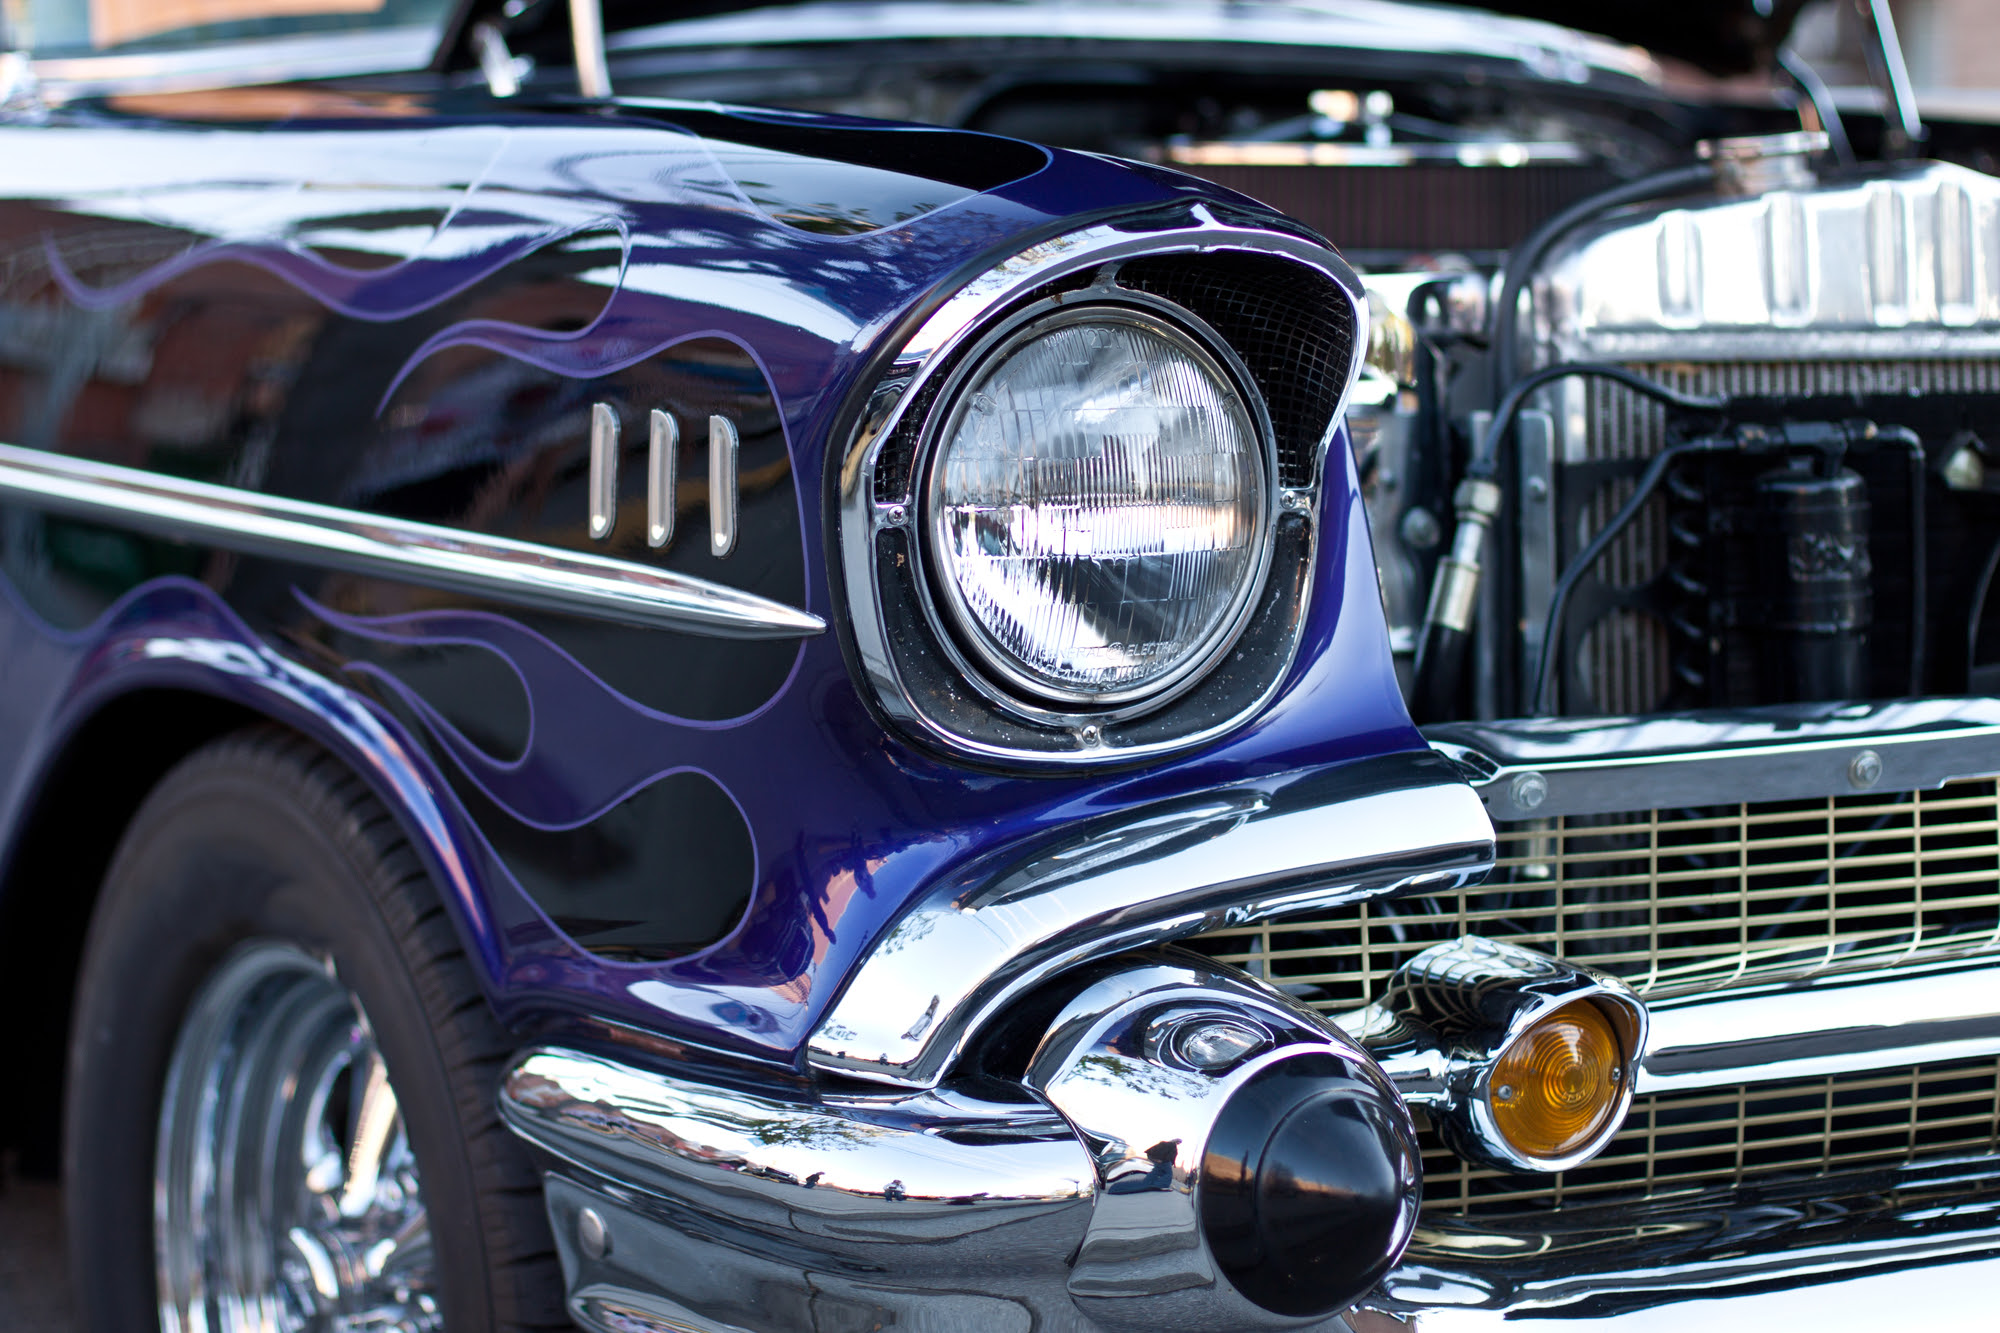 Compare Michigan Classic Car Insurance Quotes - Save up to 50%